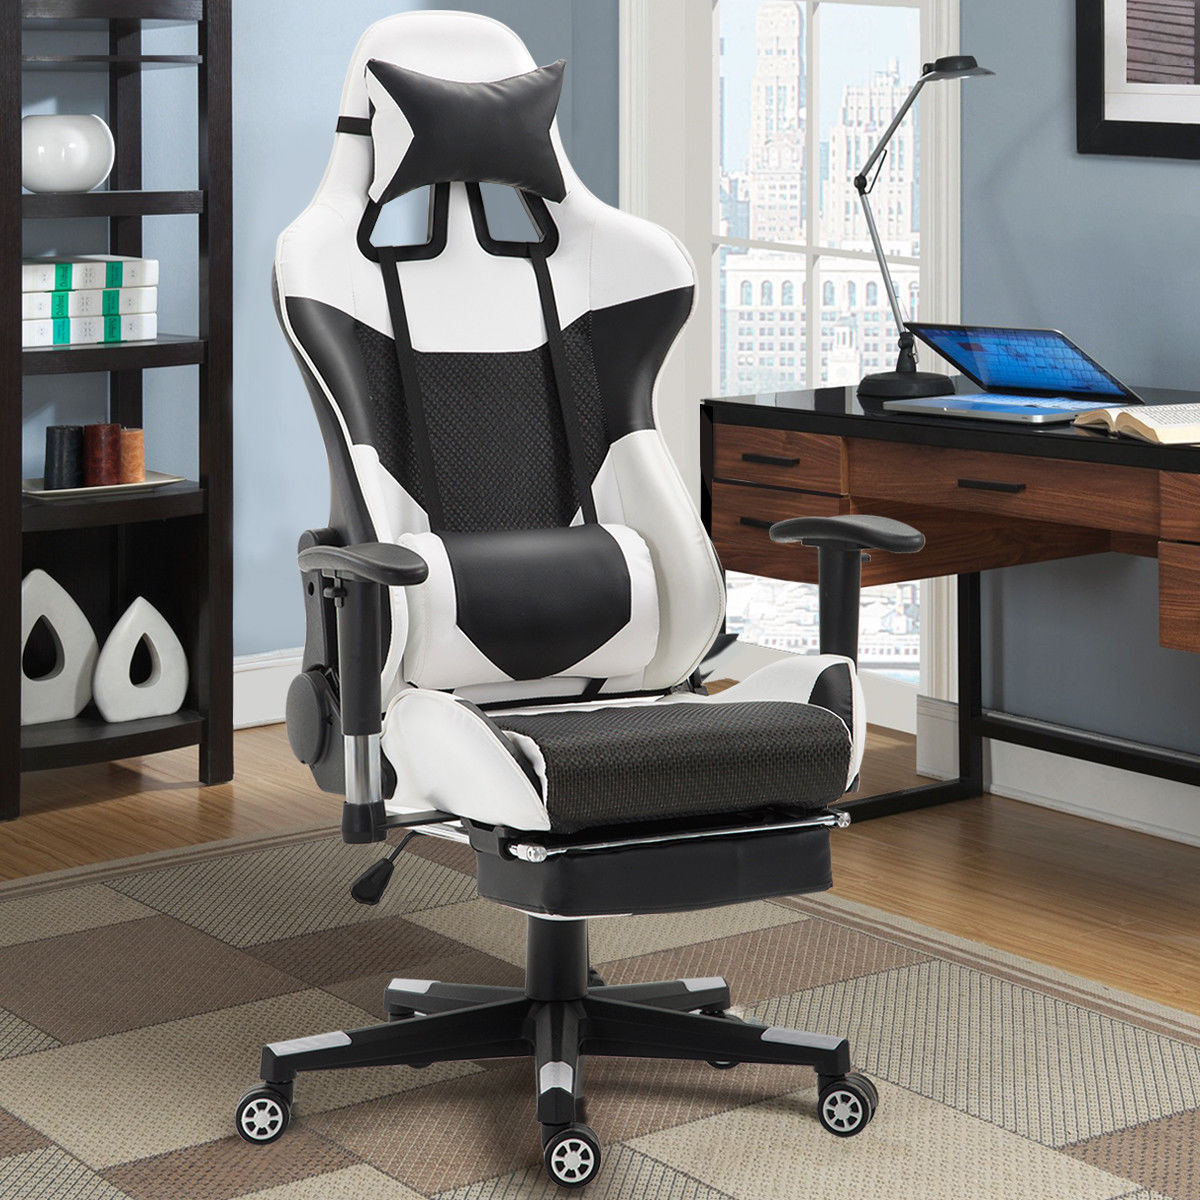 Clutch N Chill Chair (US Only)